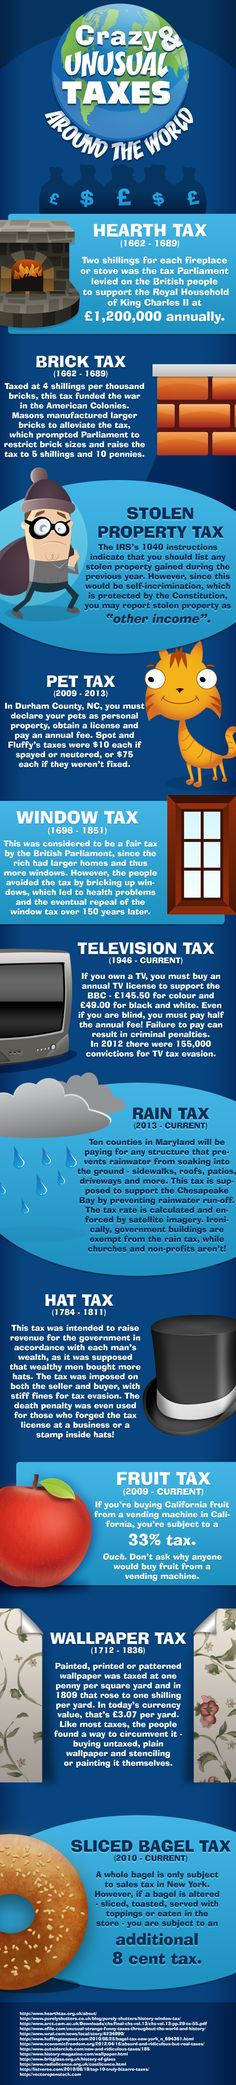 Crazy & Unusual Taxes Around the World